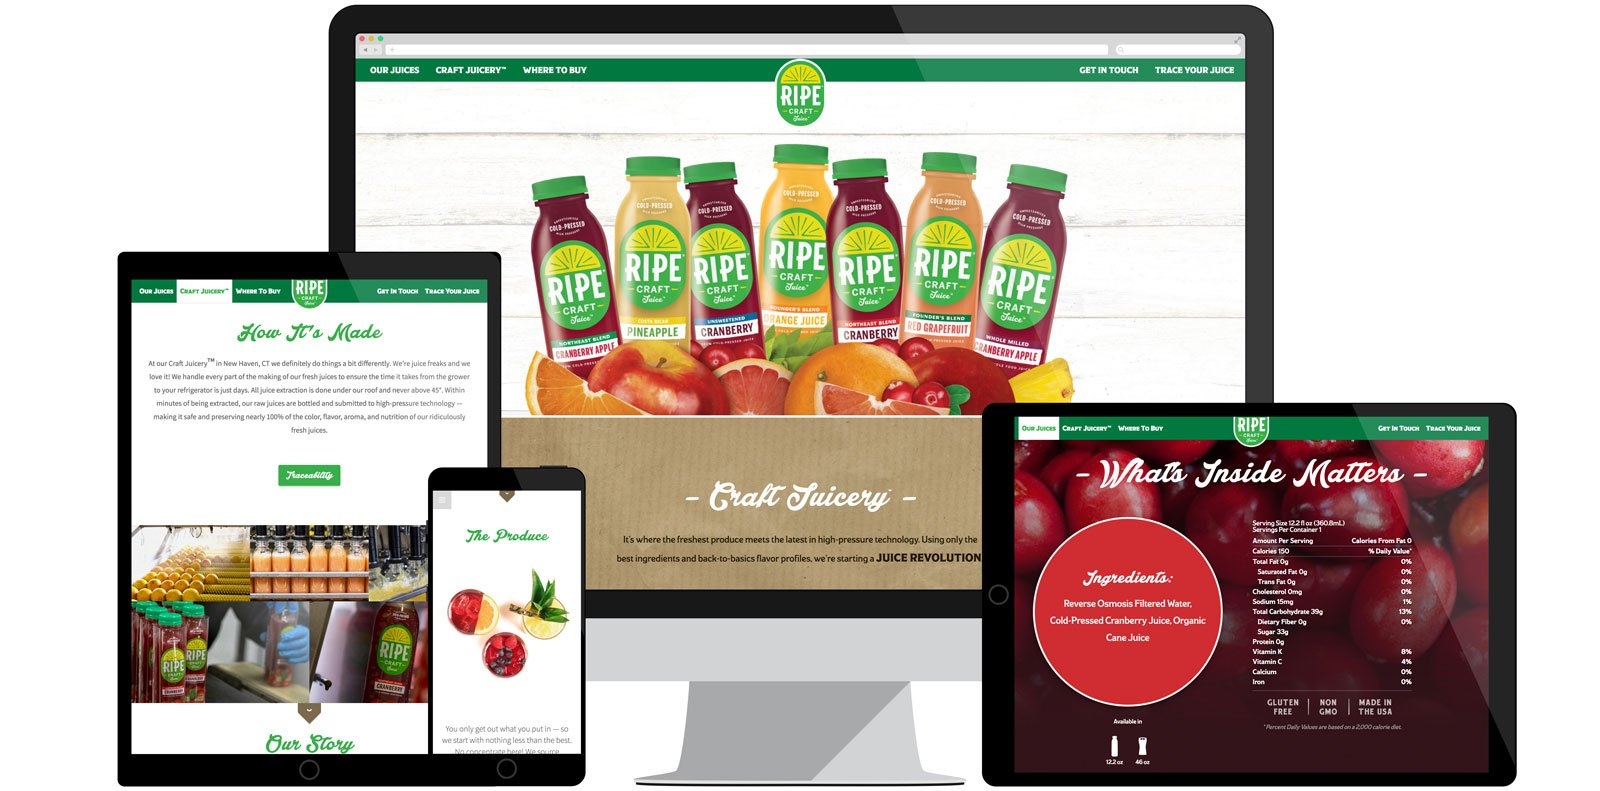 Ripe Craft Juice website